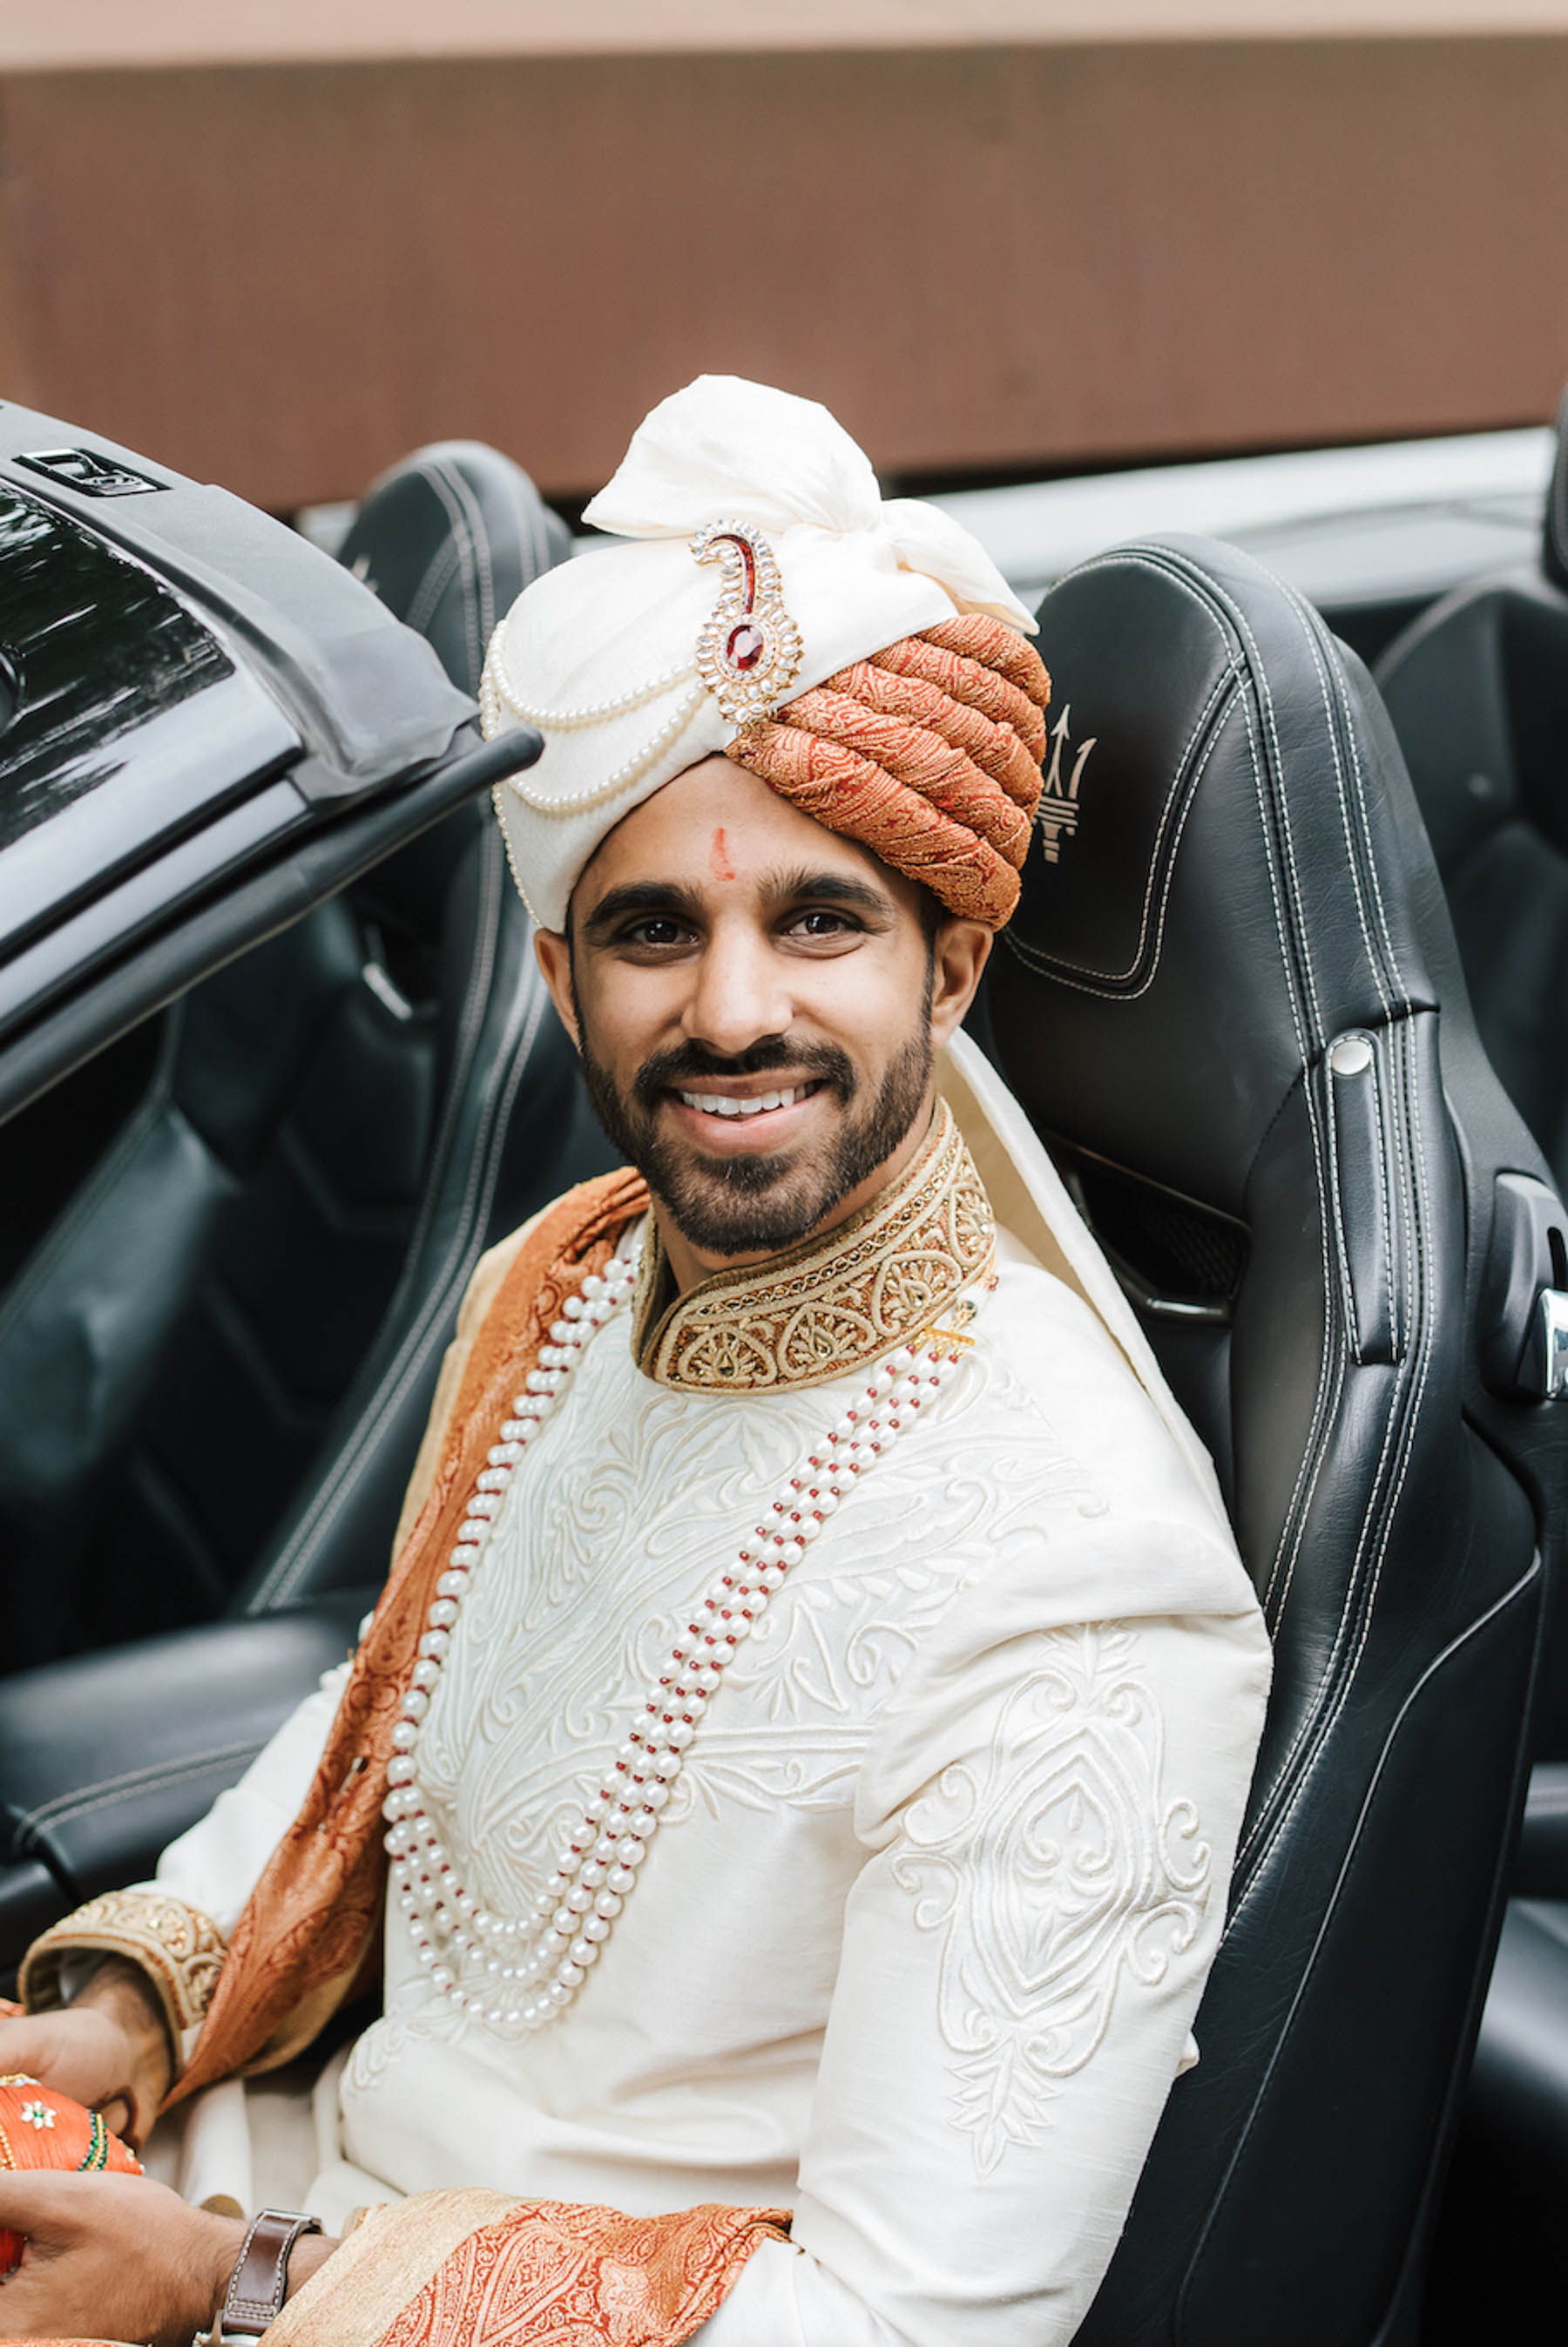 Groom, Cheten's groomswear was purchased from Millionaire in India.